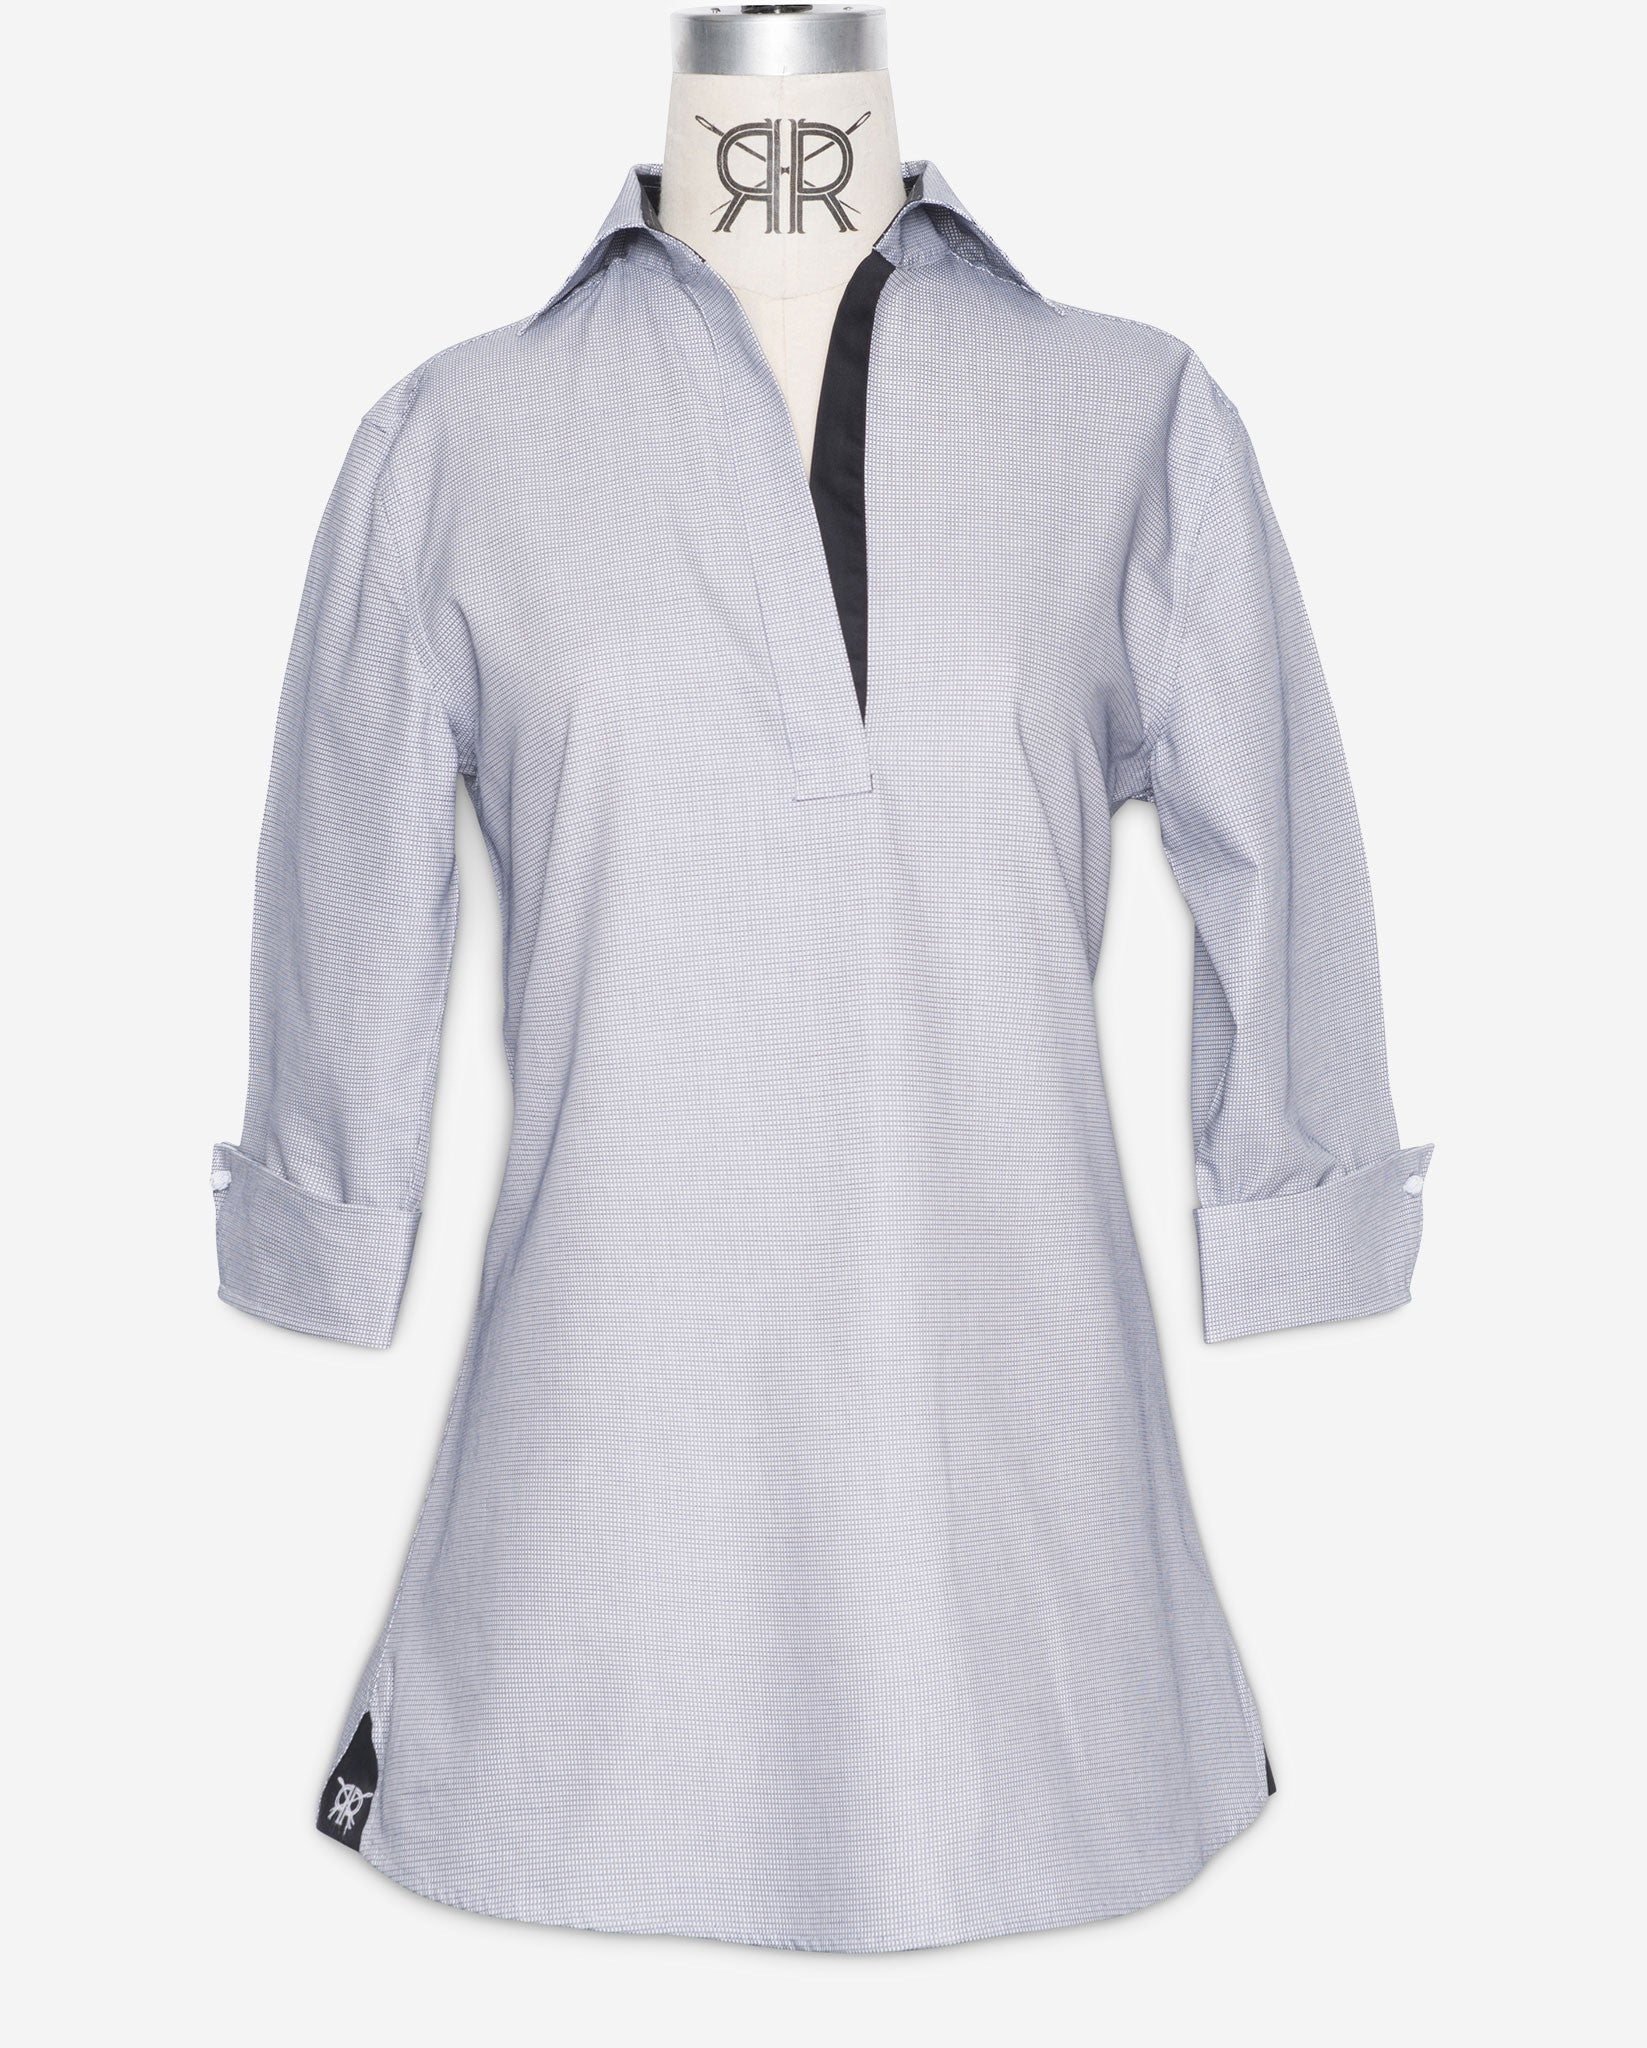 Tunic Shirt-White with Black Check Women's Popover Blouse by ...